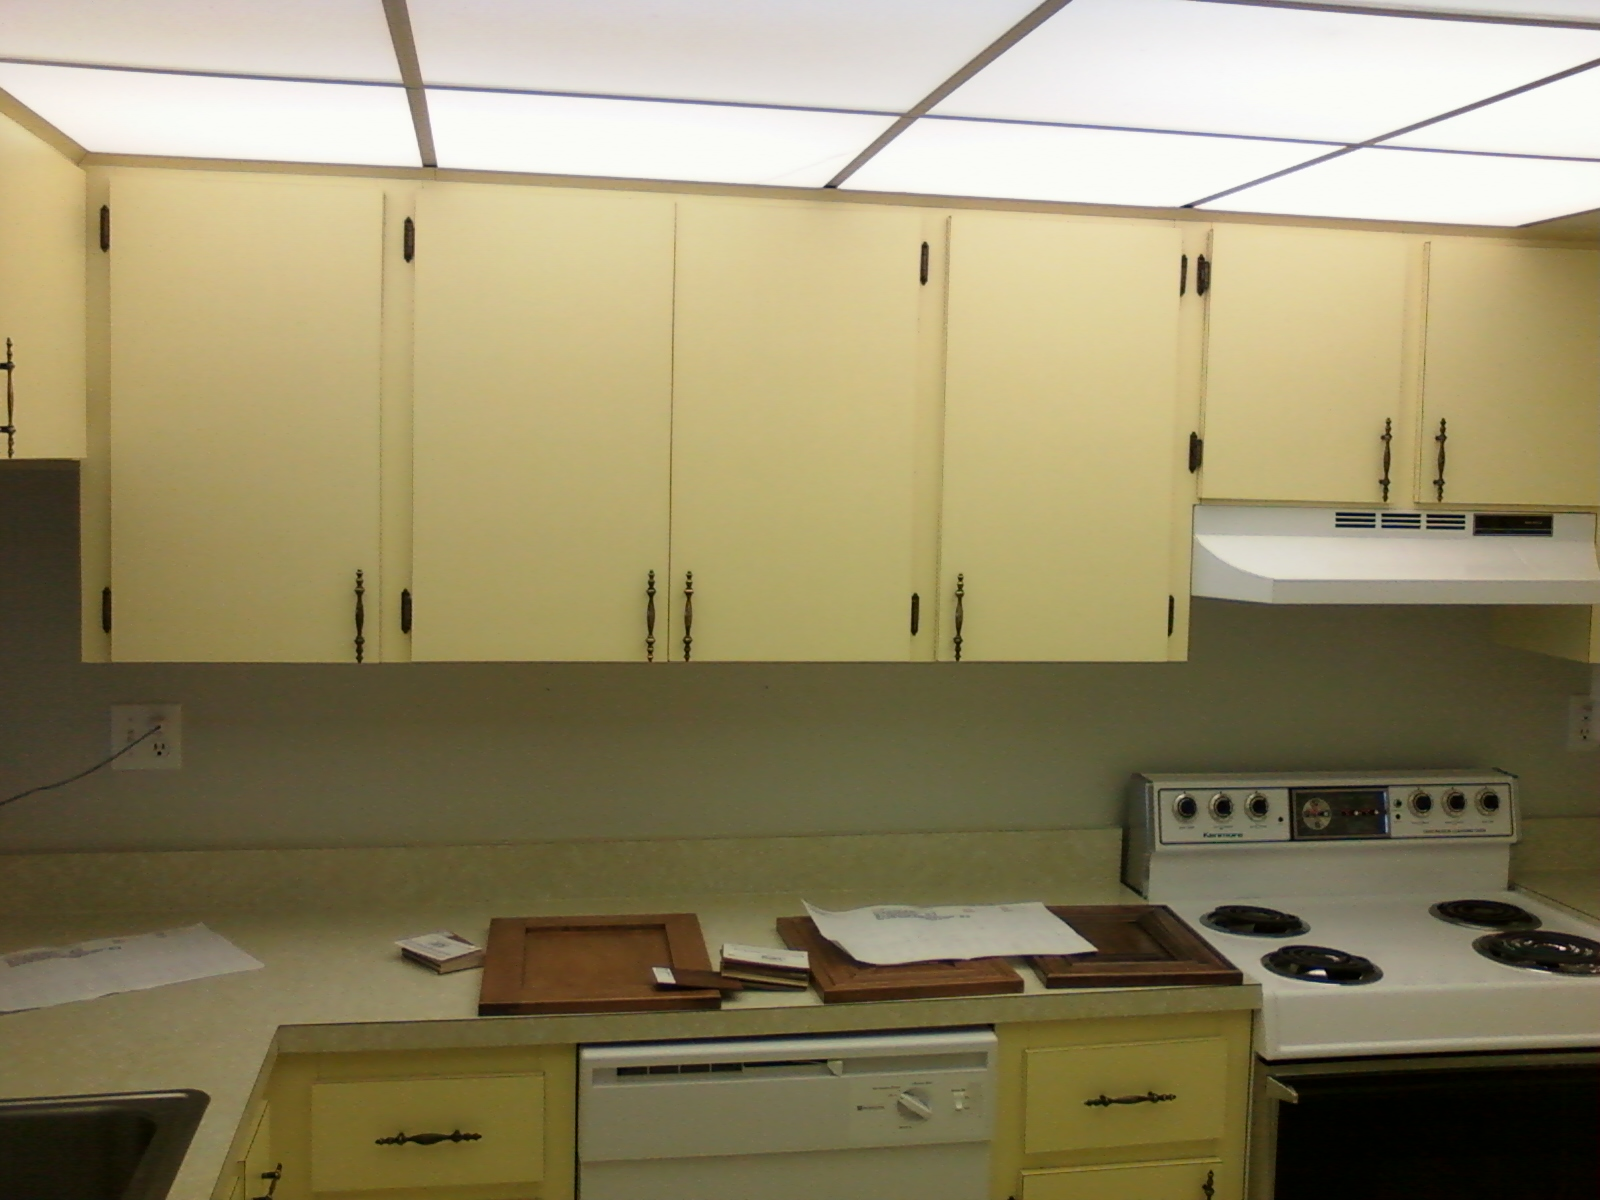 Resurfaced Kitchen Cabinets Before And After Cabinet Refacing Pictures Before And After Kitchen Facelifts